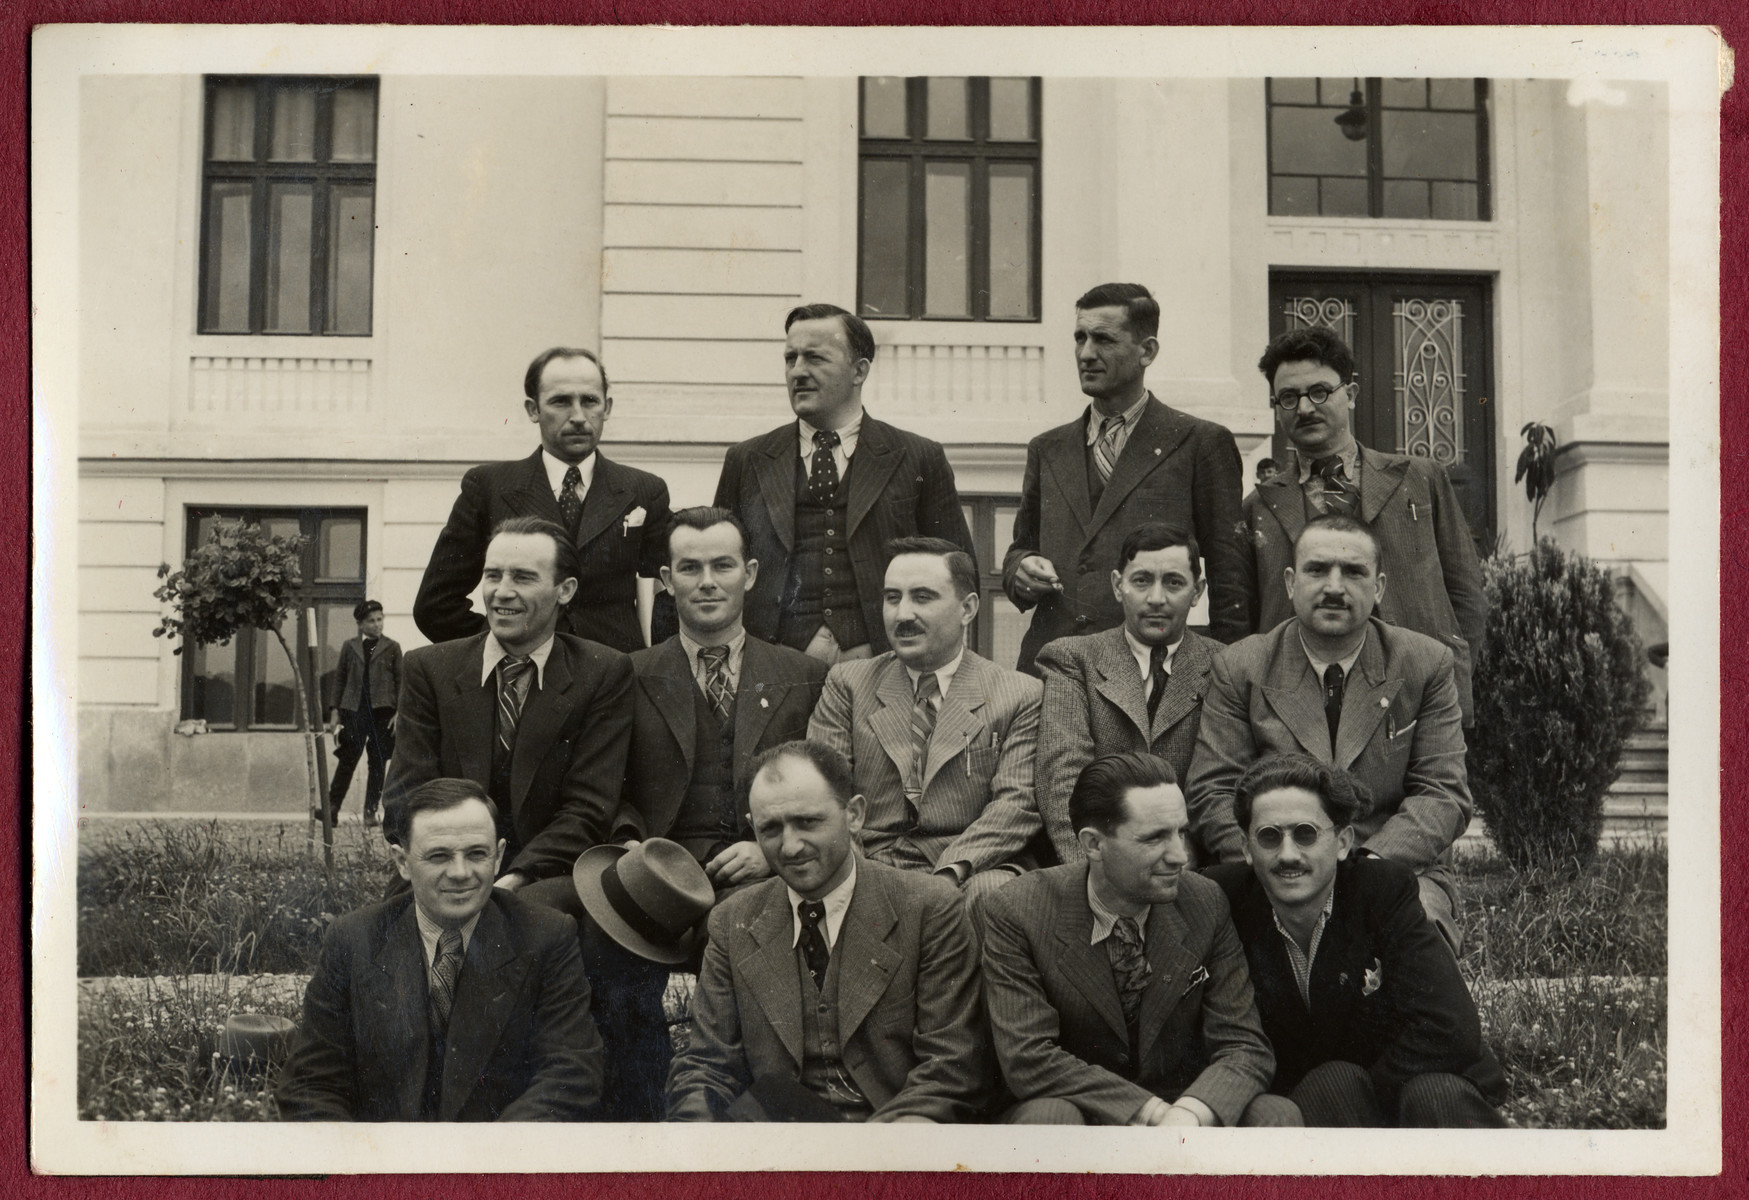 Jevrem Dragojevic, f(irst row seated second from the left)poses with other men before a municipal building in Visegrad, Yugoslavia.